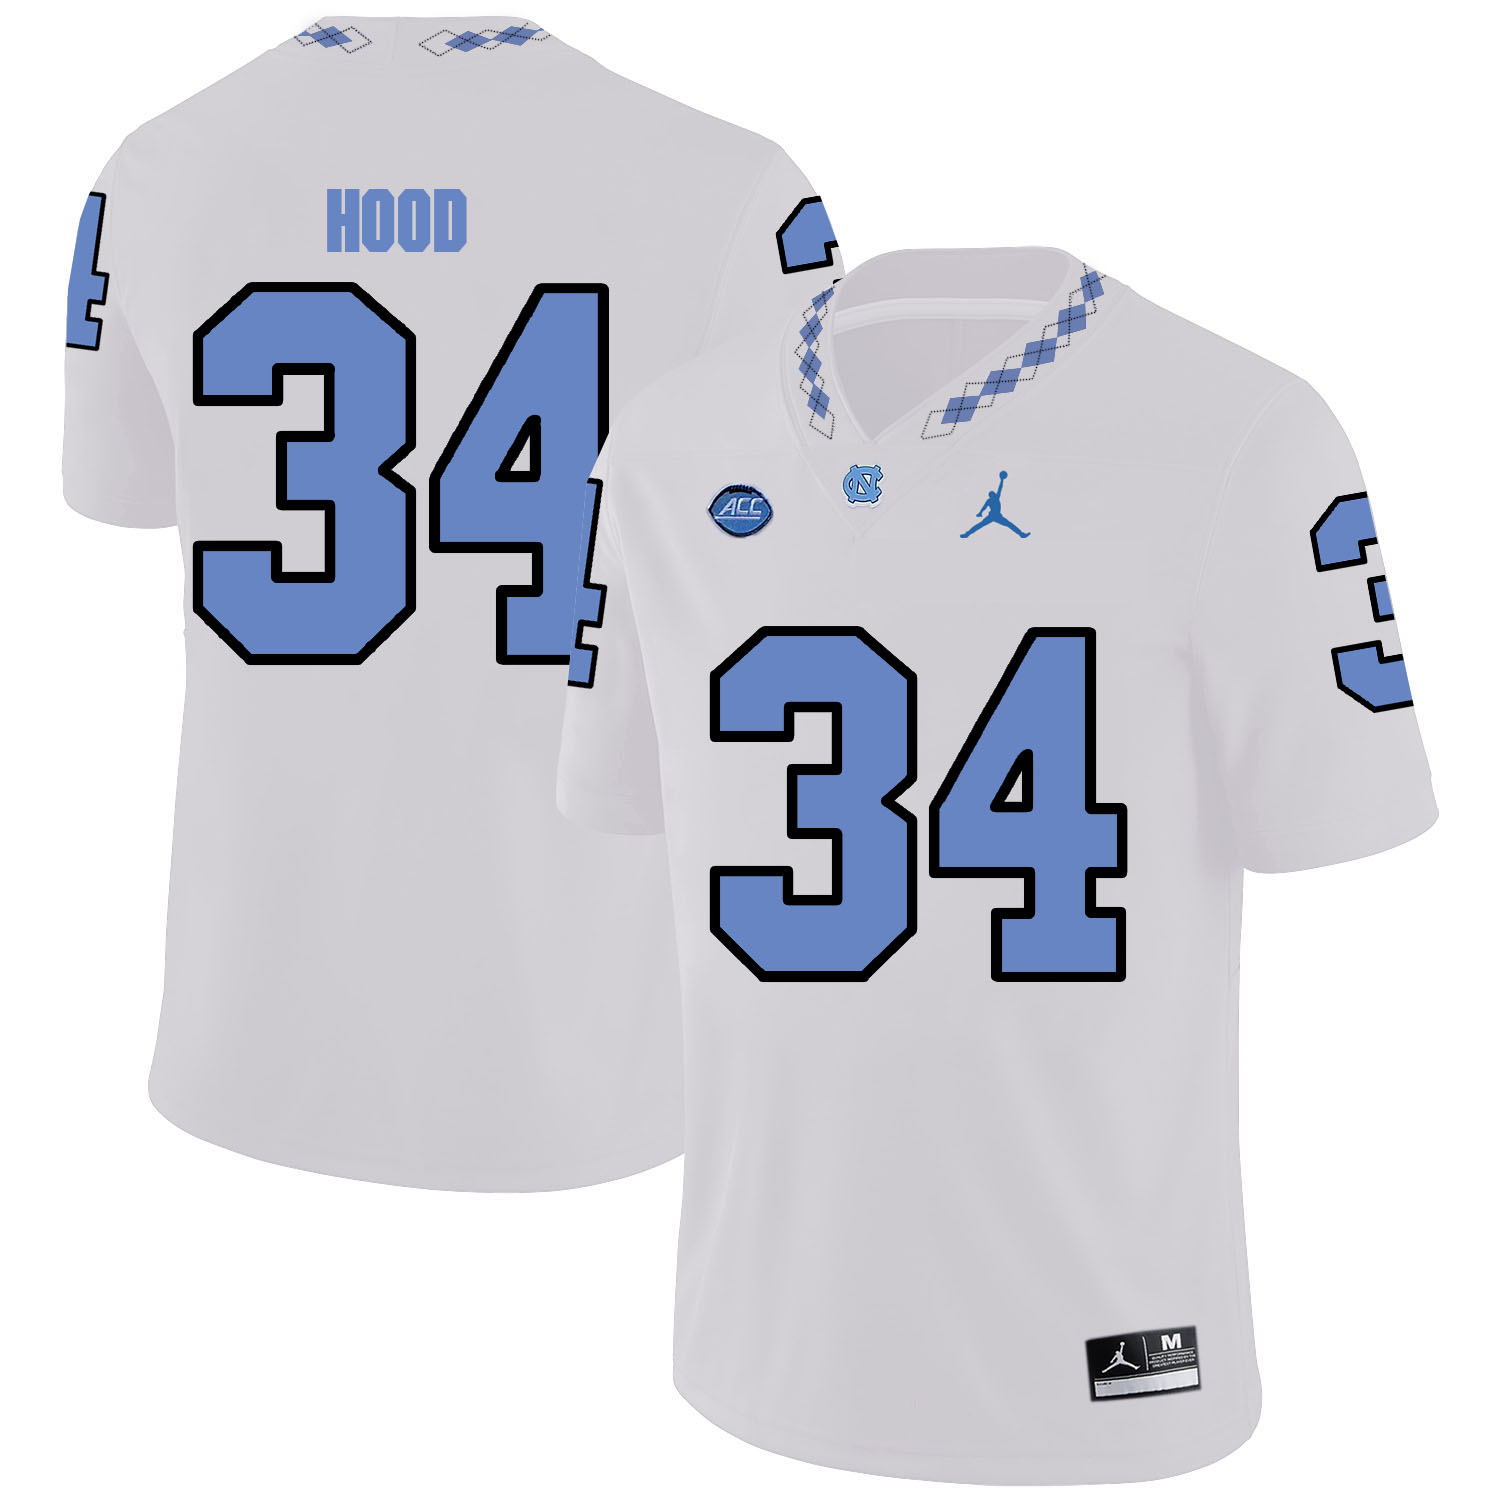 North Carolina Tar Heels 34 Elijah Hood White College Football Jersey